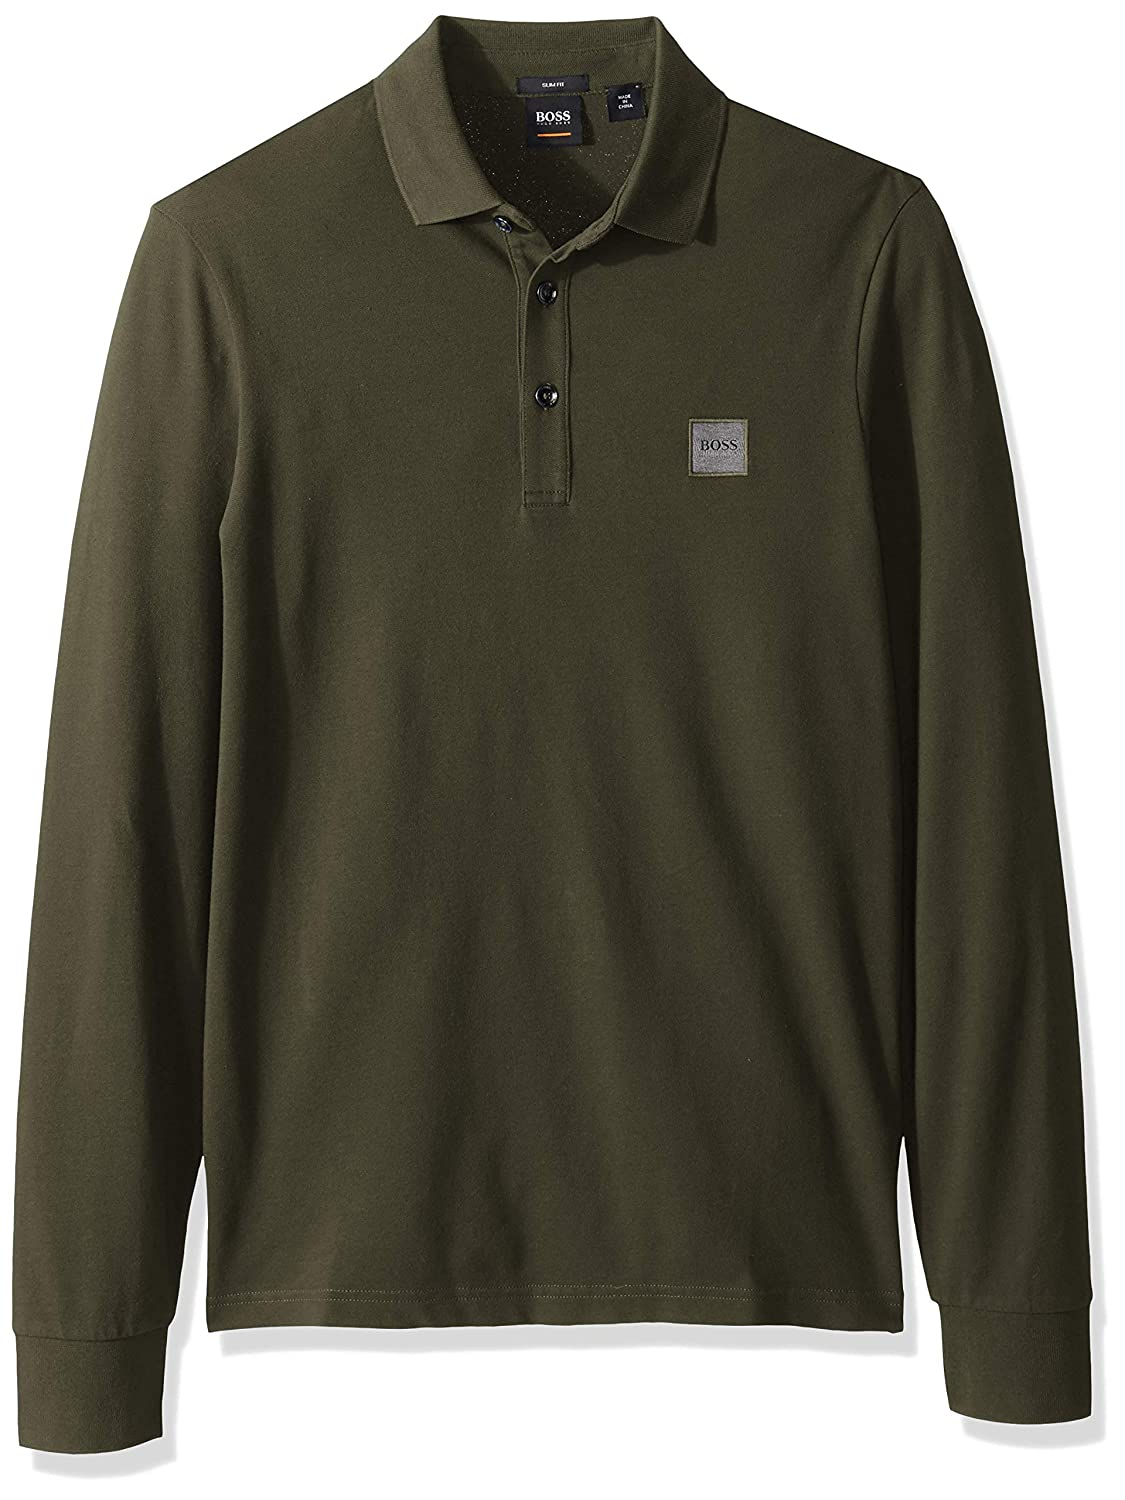 dcbb5770 Amazon.com: Hugo Boss Men's Passerby Long Sleeve Polo with Chest Logo  Patch: Clothing